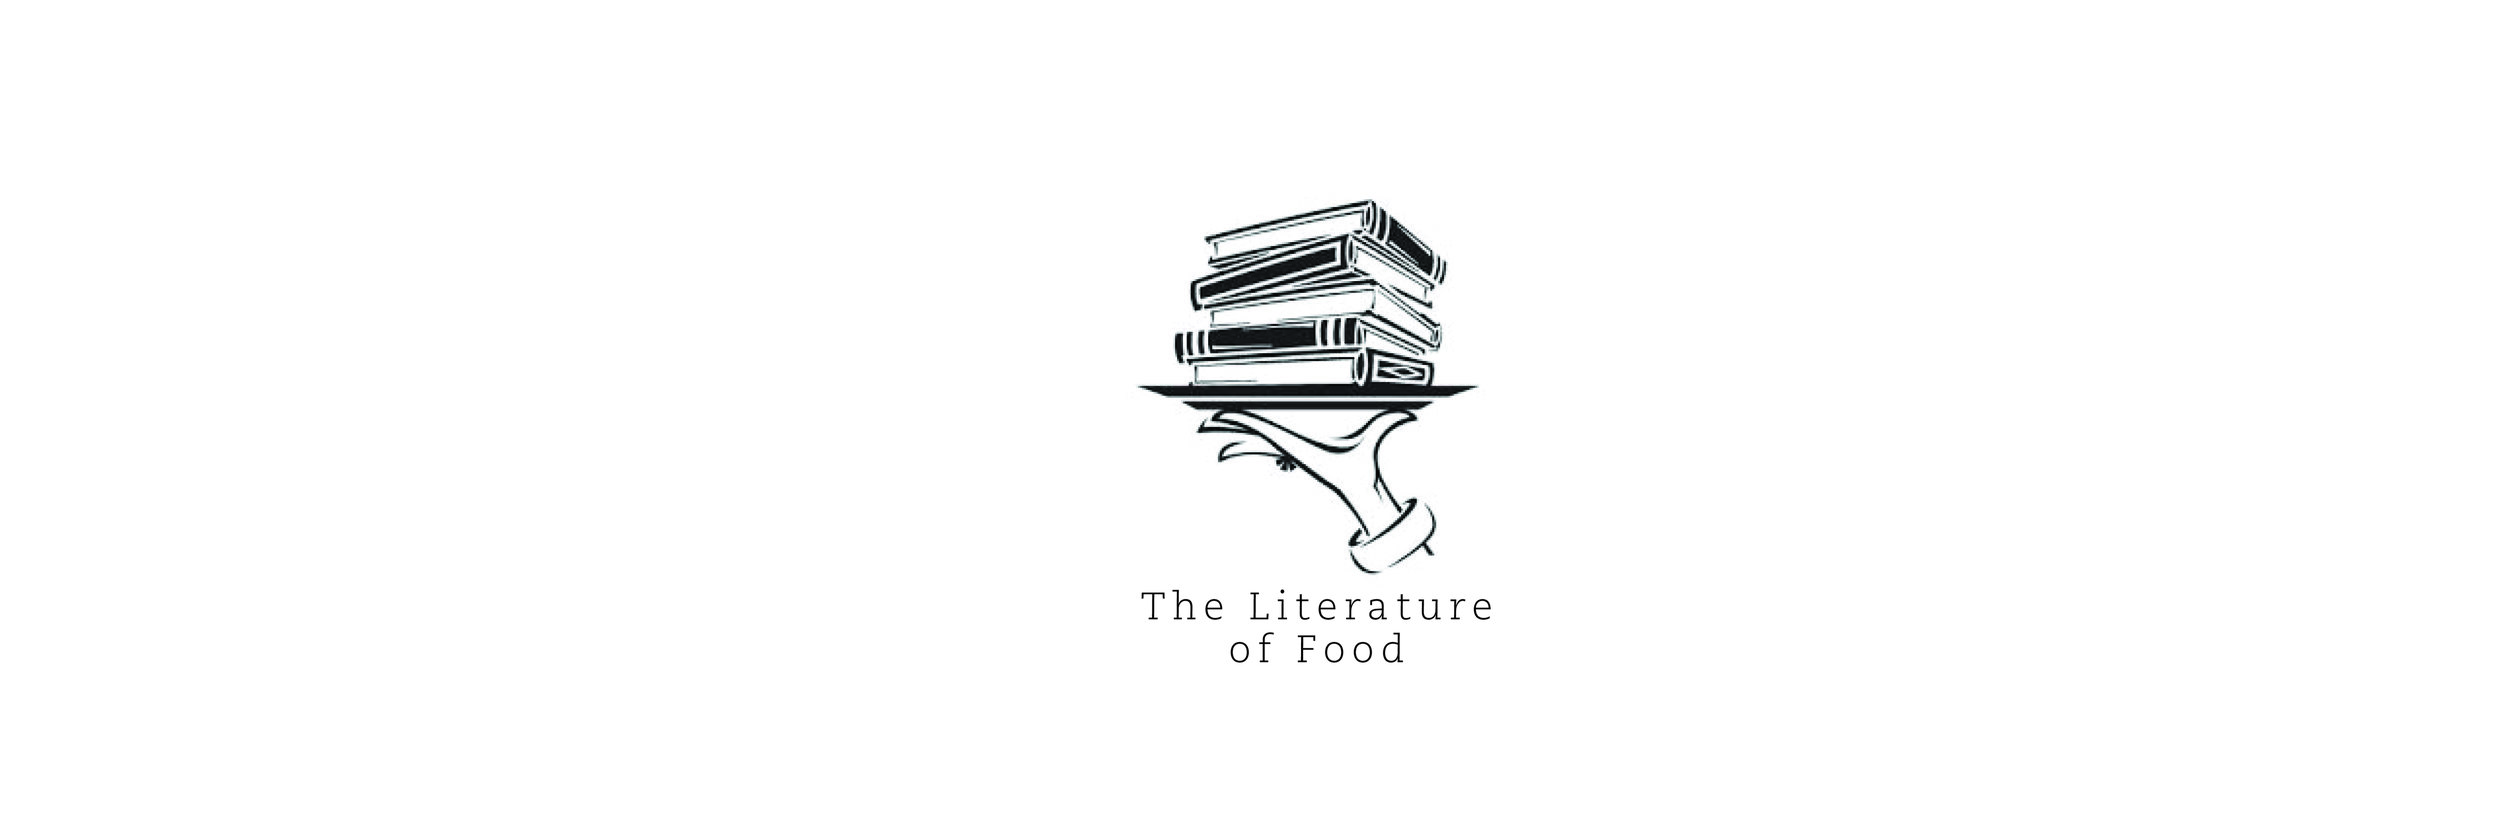 Literature of Food Twitter Header.jpg